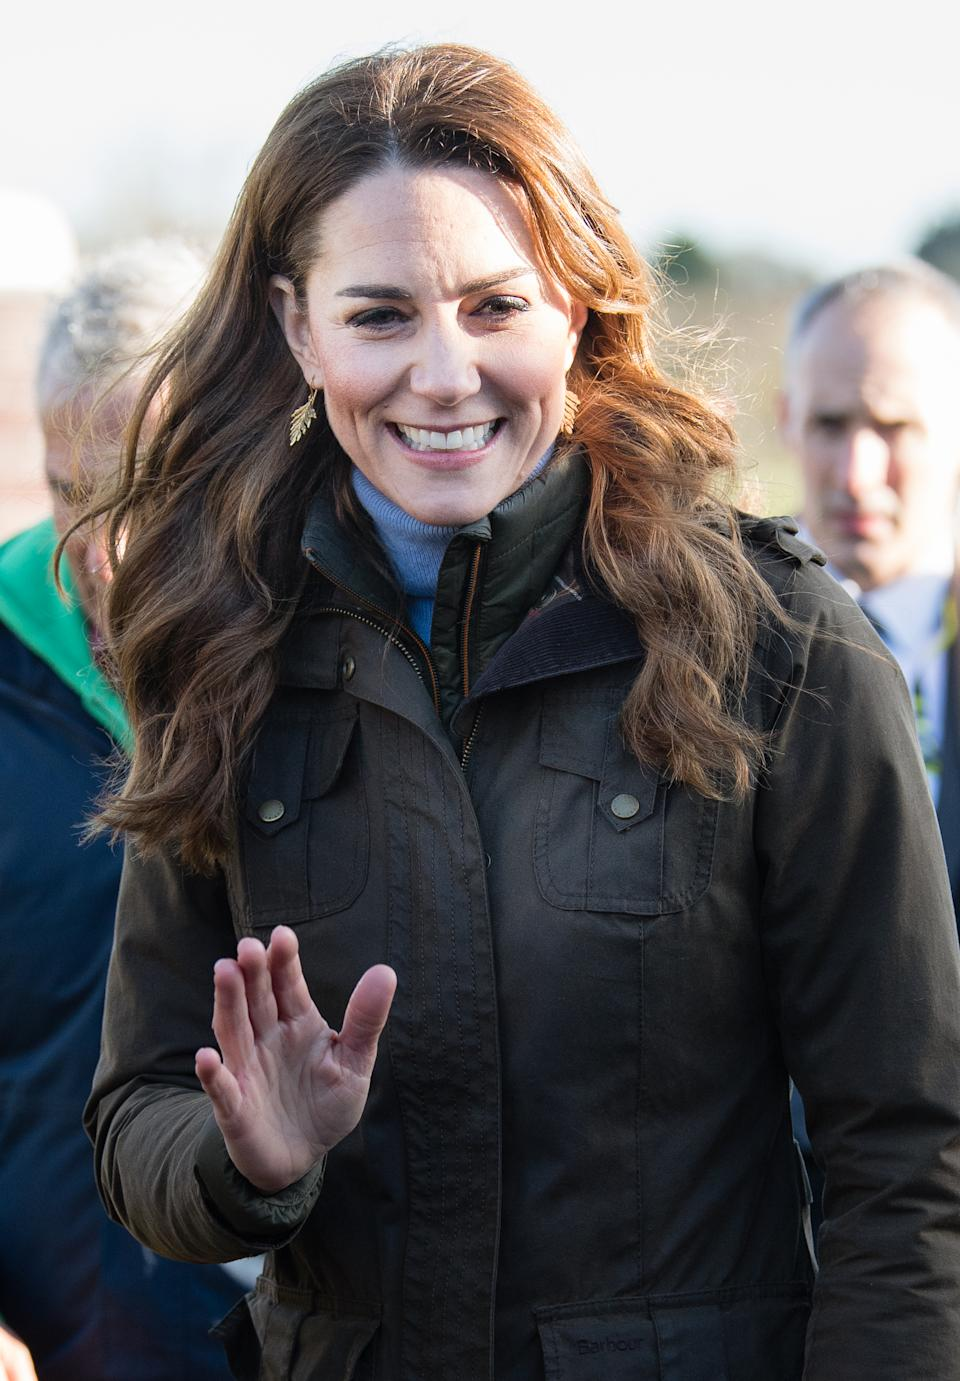 NEWTOWNARDS, NORTHERN IRELAND - FEBRUARY 12: Catherine, Duchess of Cambridge visits at The Ark Open Farm on February 12, 2020 in Newtownards, Northern Ireland. This visit is part of her Early Years Foundation Survey.  (Photo by Samir Hussein/WireImage)